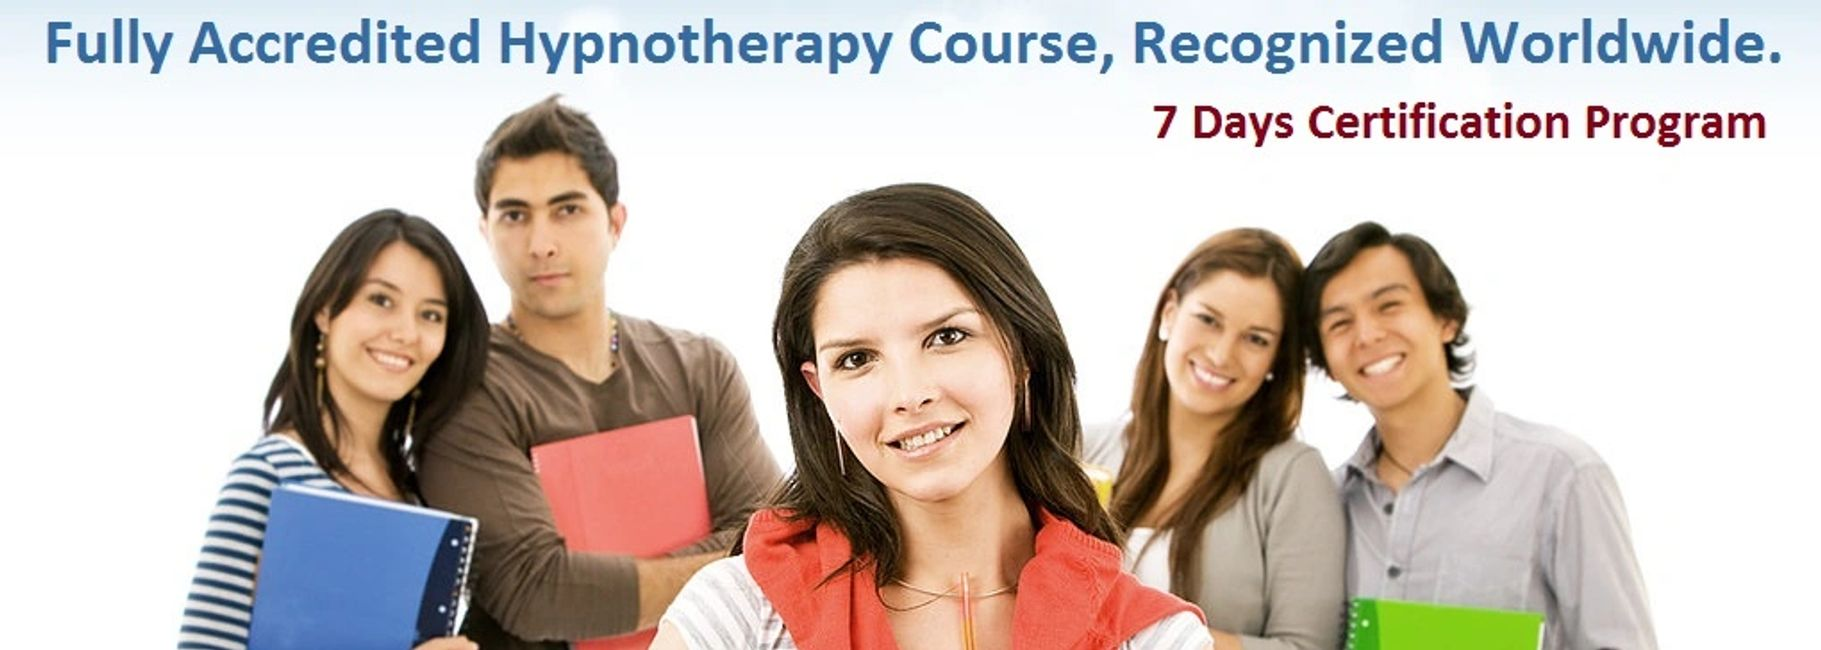 Hypnotherapy certification in Vancouver BC,hypnosis,courses,Vancouver hypnotherapy,hypnosis course,